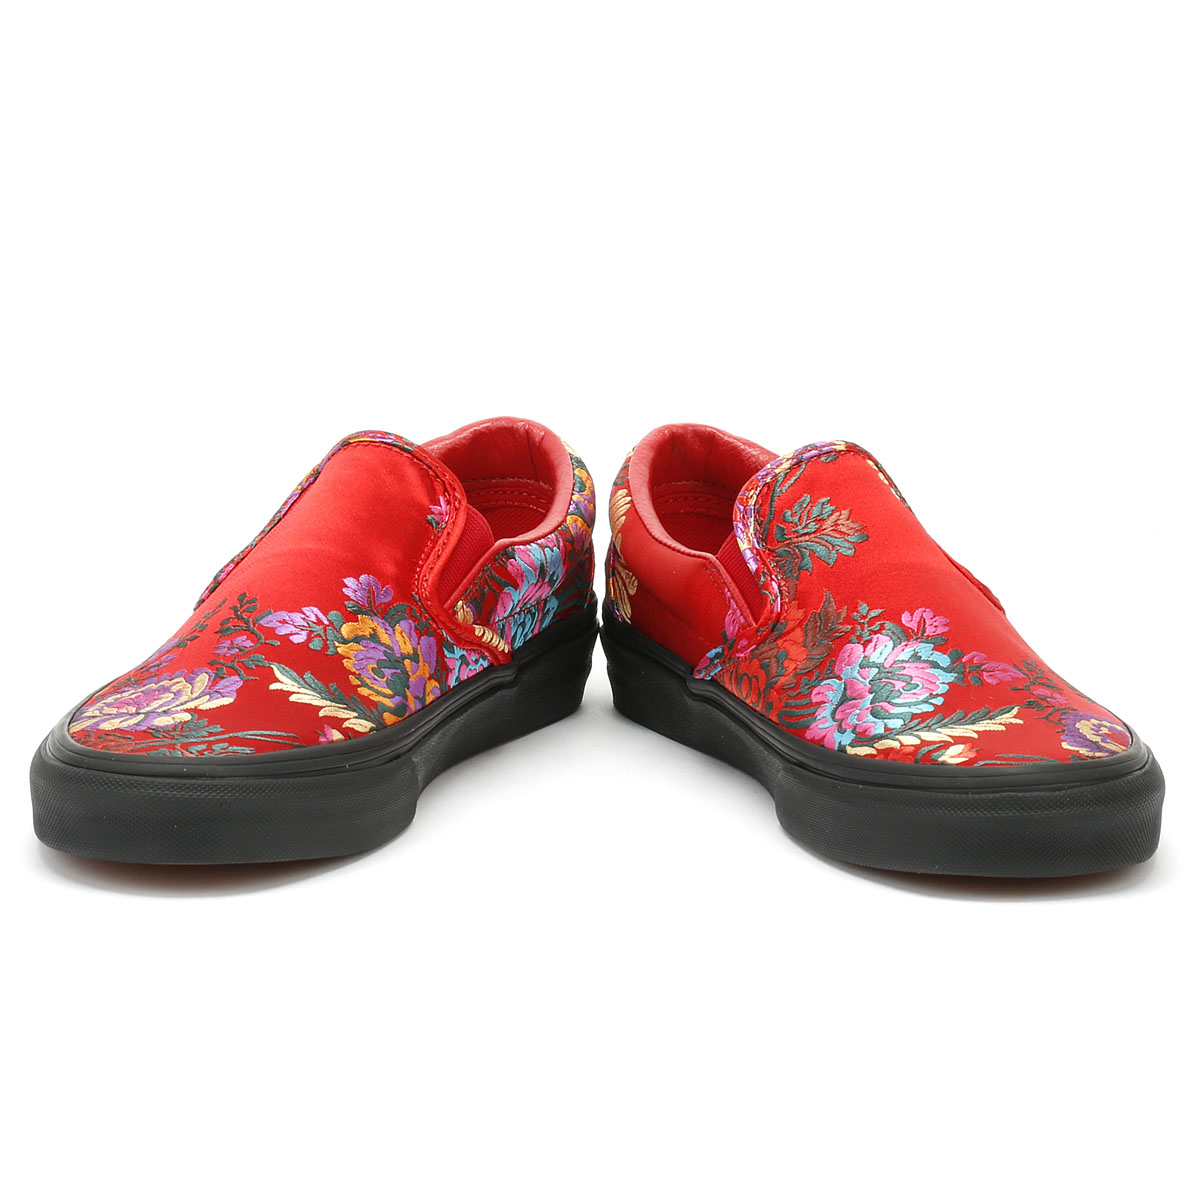 955b6851f24 Vans Classic Slip on Festival Satin Womens Red Trainers Casual Skate Shoes